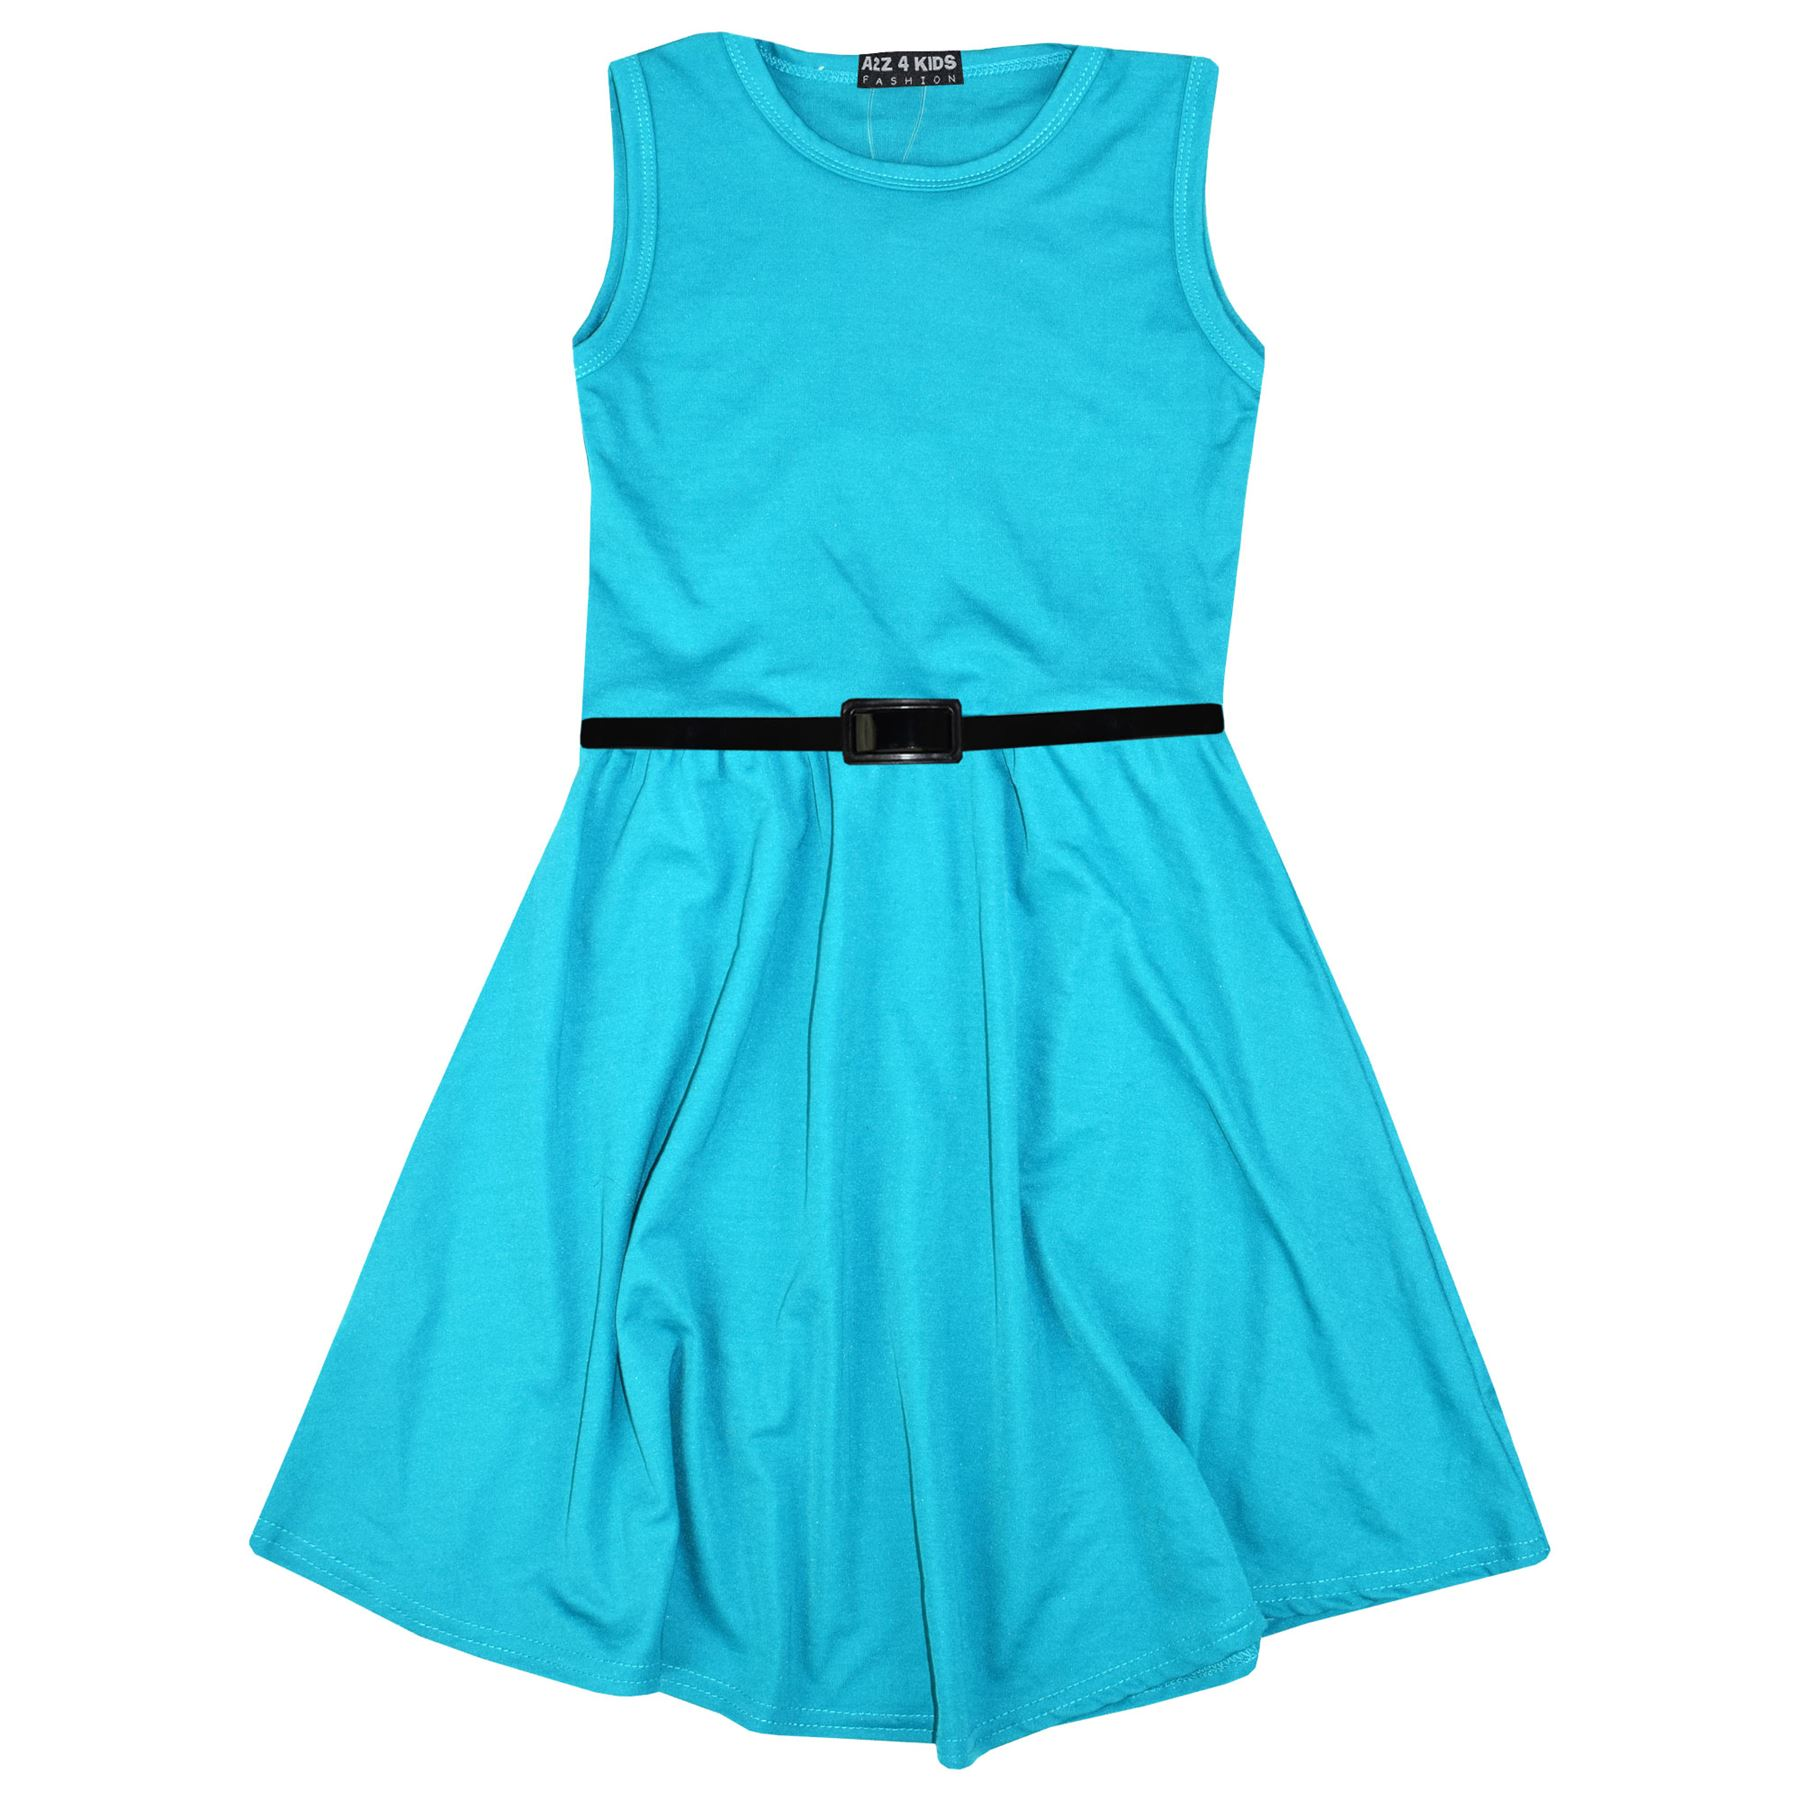 Girls-Skater-Dress-Kids-Party-Dresses-With-Free-Belt-5-6-7-8-9-10-11-12-13-Years thumbnail 75